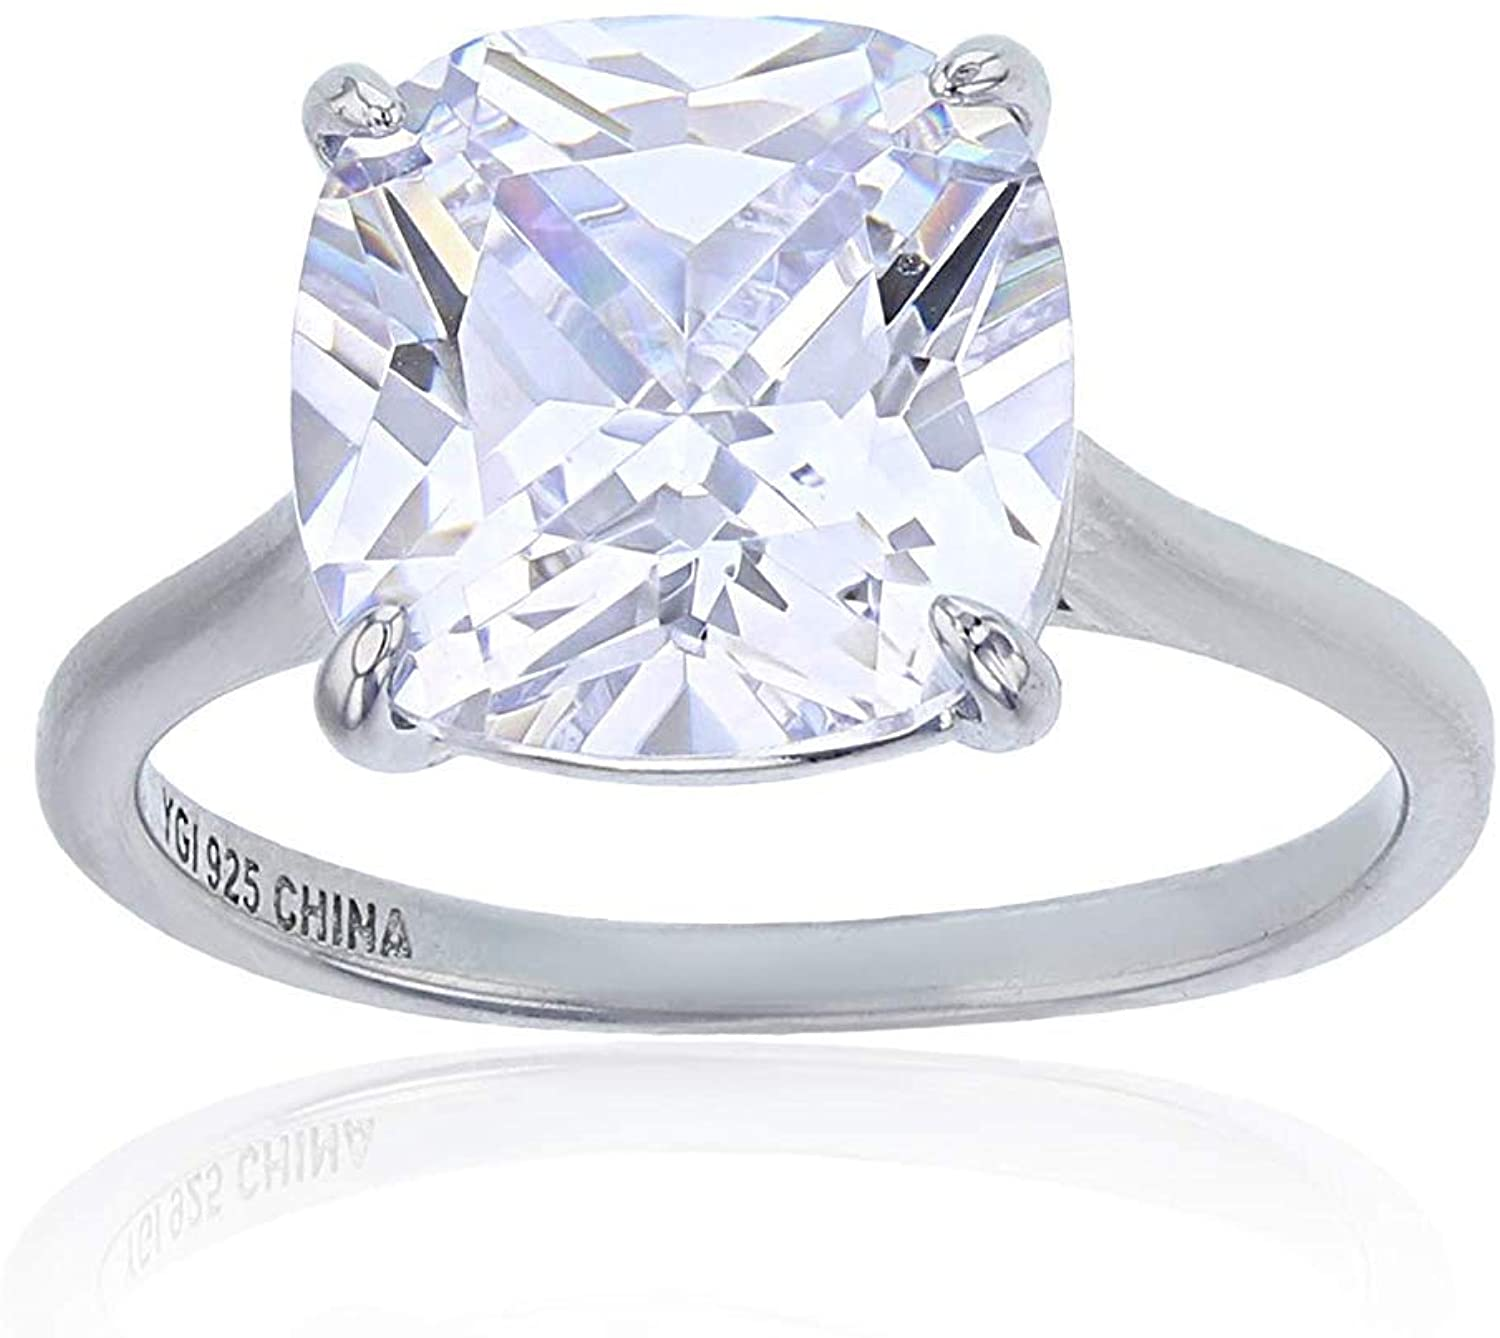 Sterling Silver Rhodium 10mm Cushion Cut Cubic Zirconia Solitaire Engagement Ring